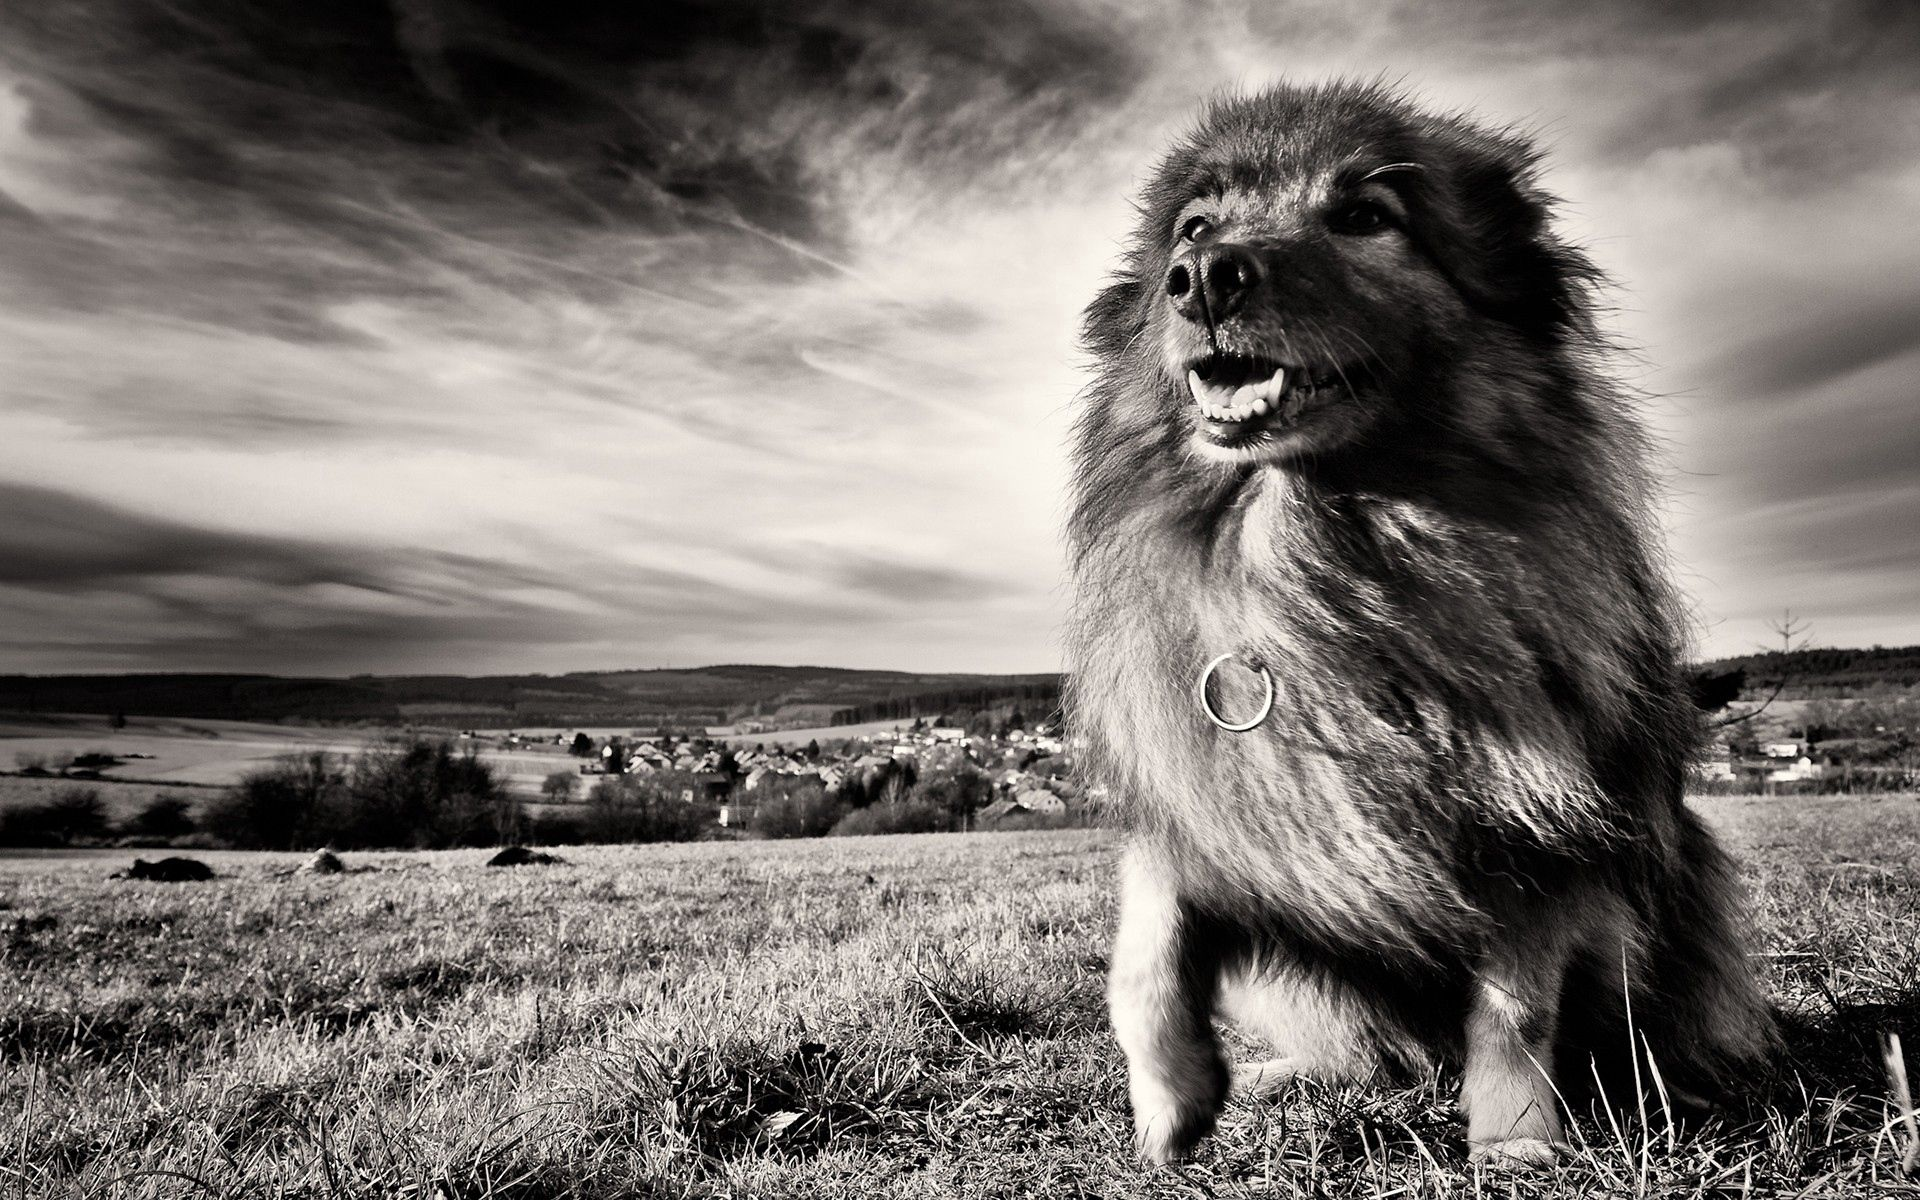 147599 download wallpaper Animals, Dog, Grass, Wind, Bw, Chb screensavers and pictures for free